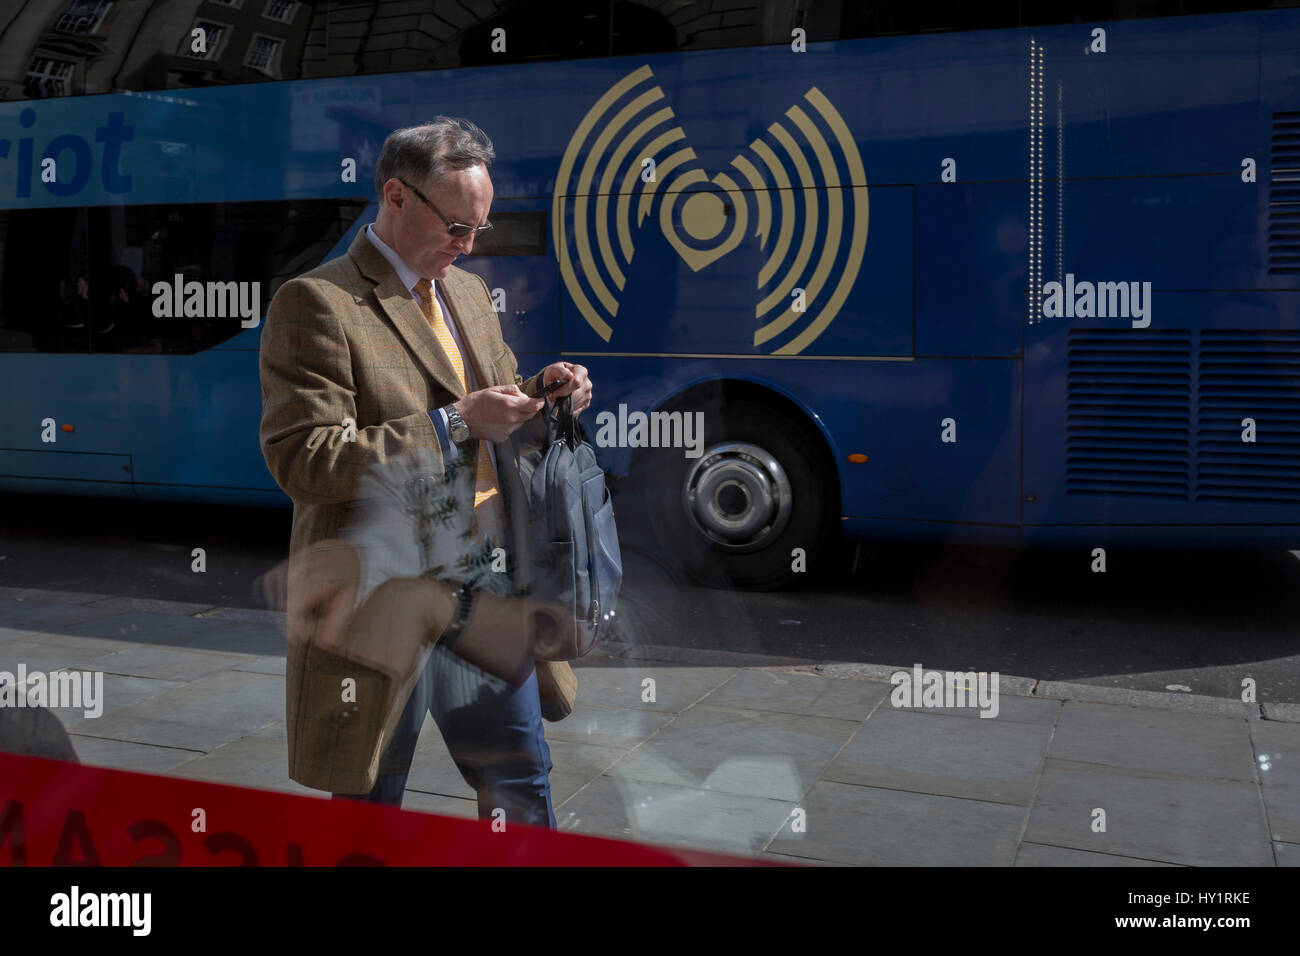 Man checks messages while passing Wifi symbol, on 30th March 2017, in London, England. - Stock Image